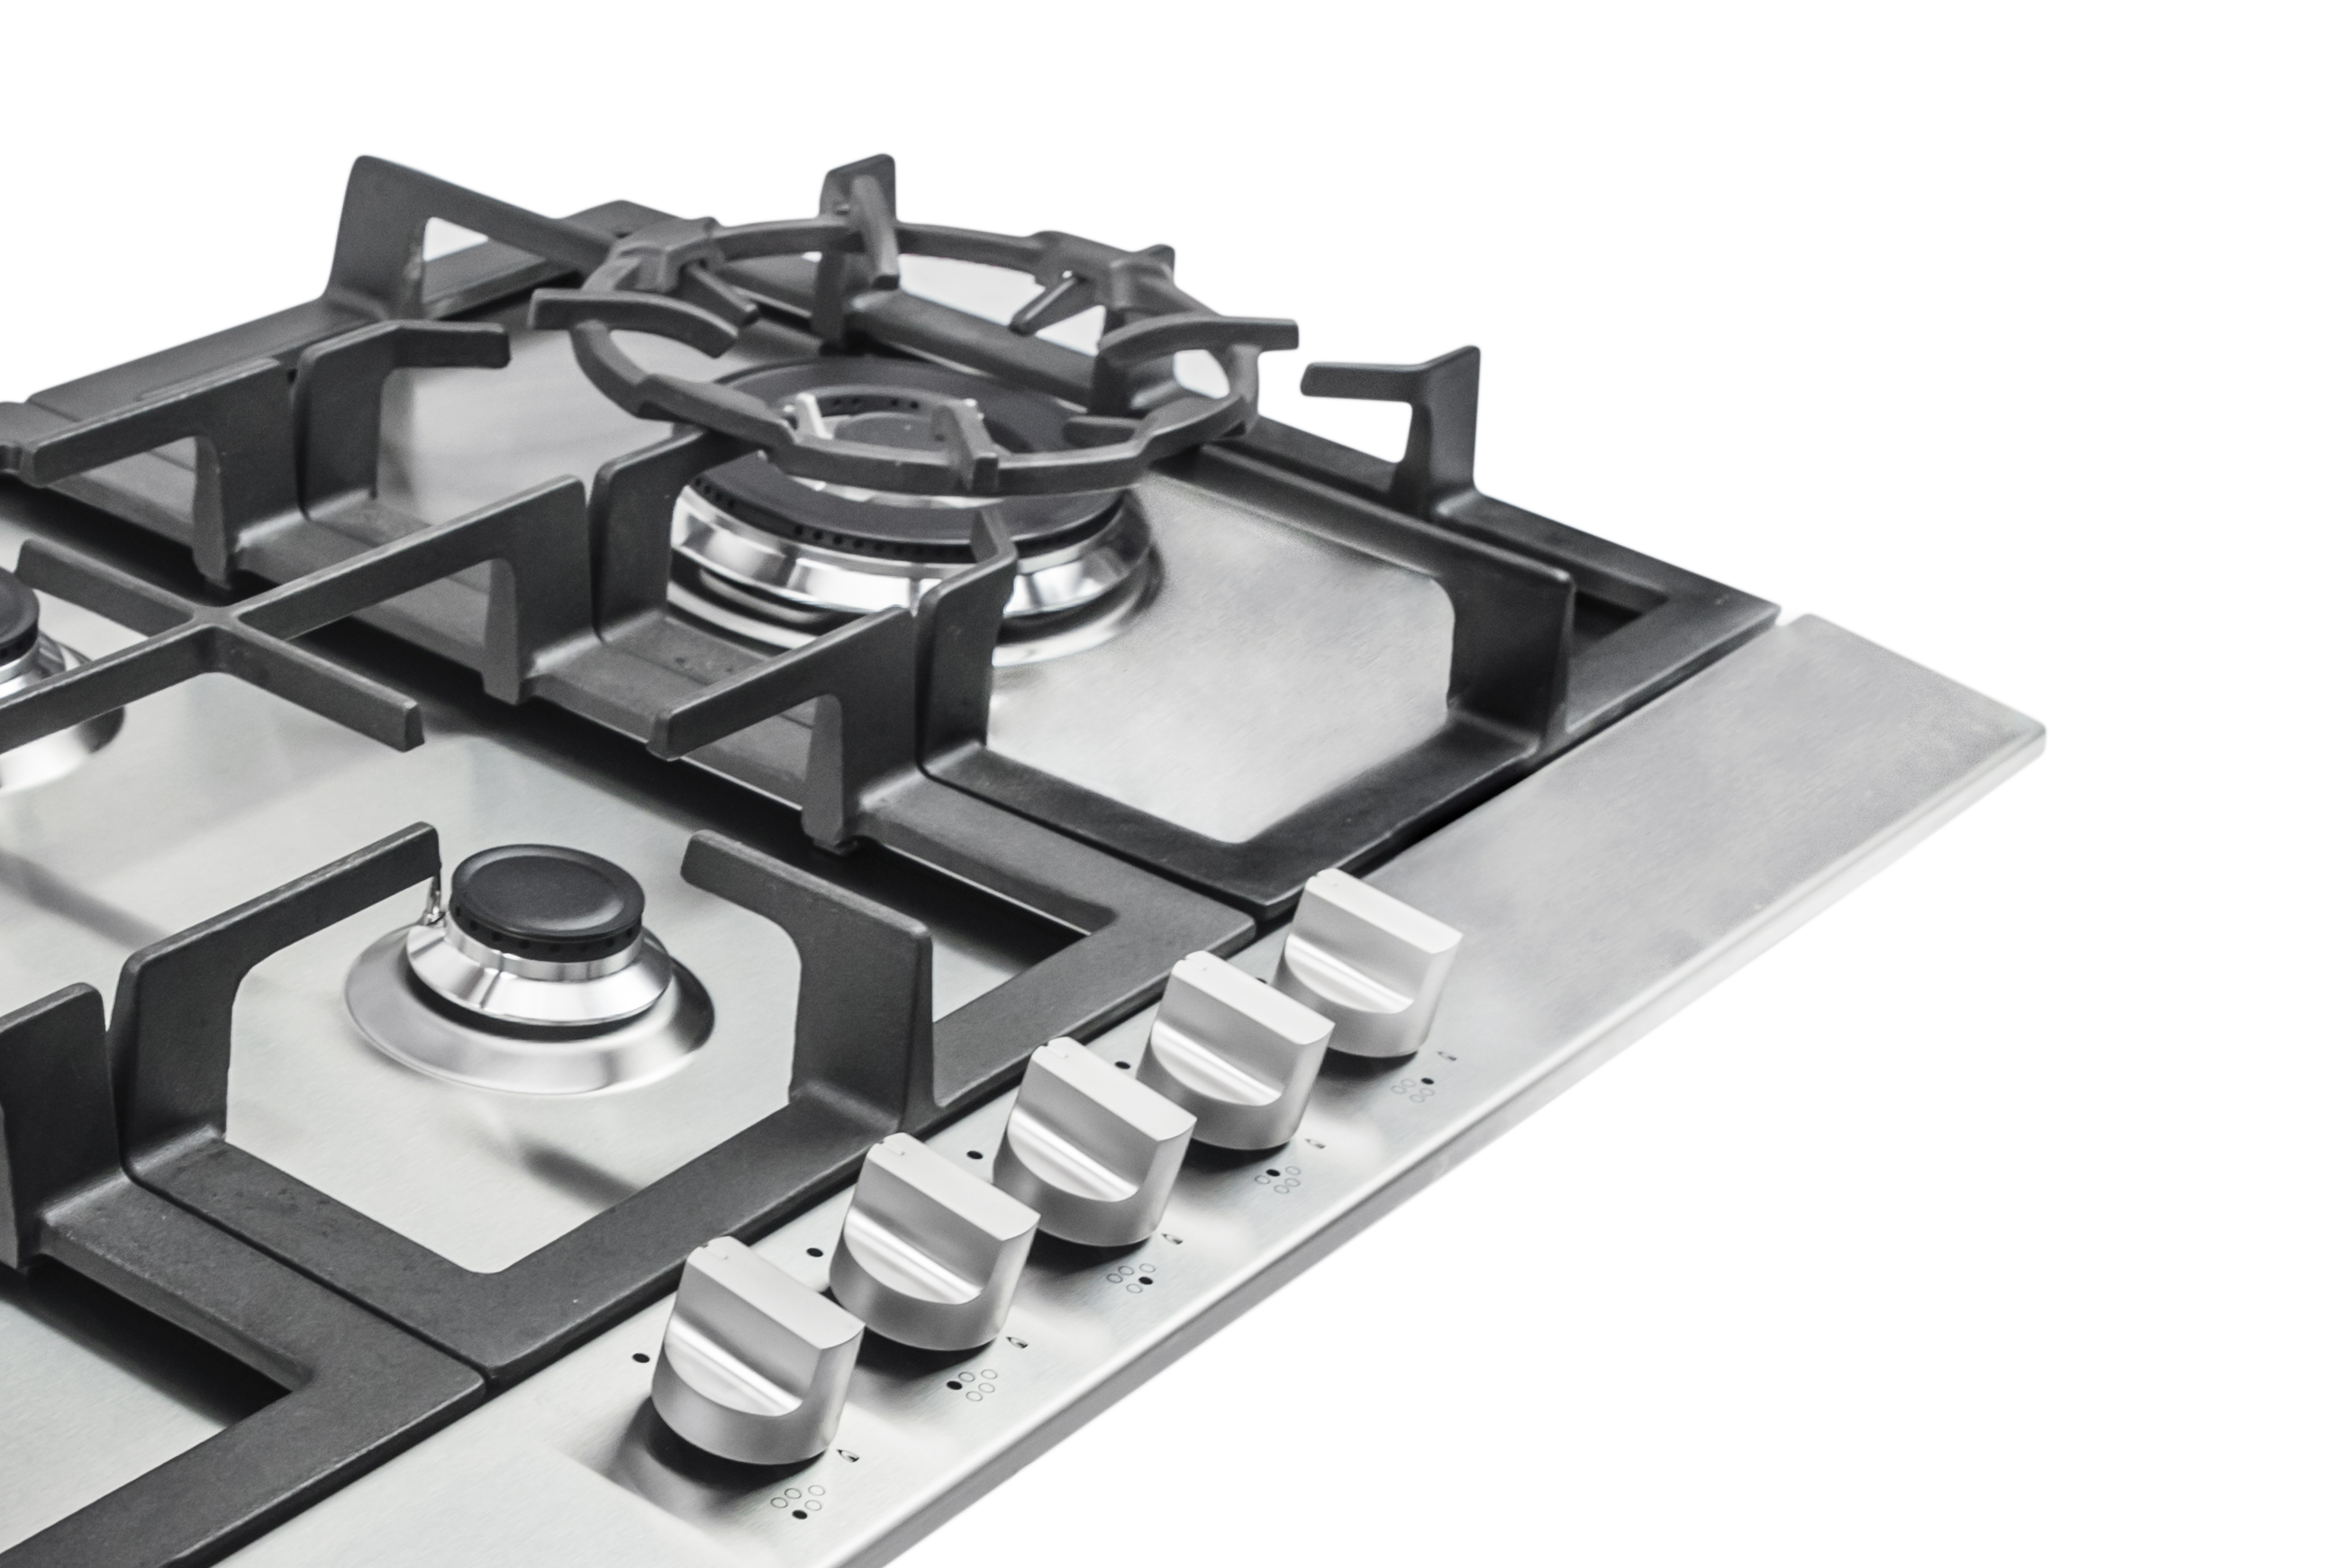 Cooktop Gas Stoves 30 Gas Cooktop With 5 Burners 850sltx E